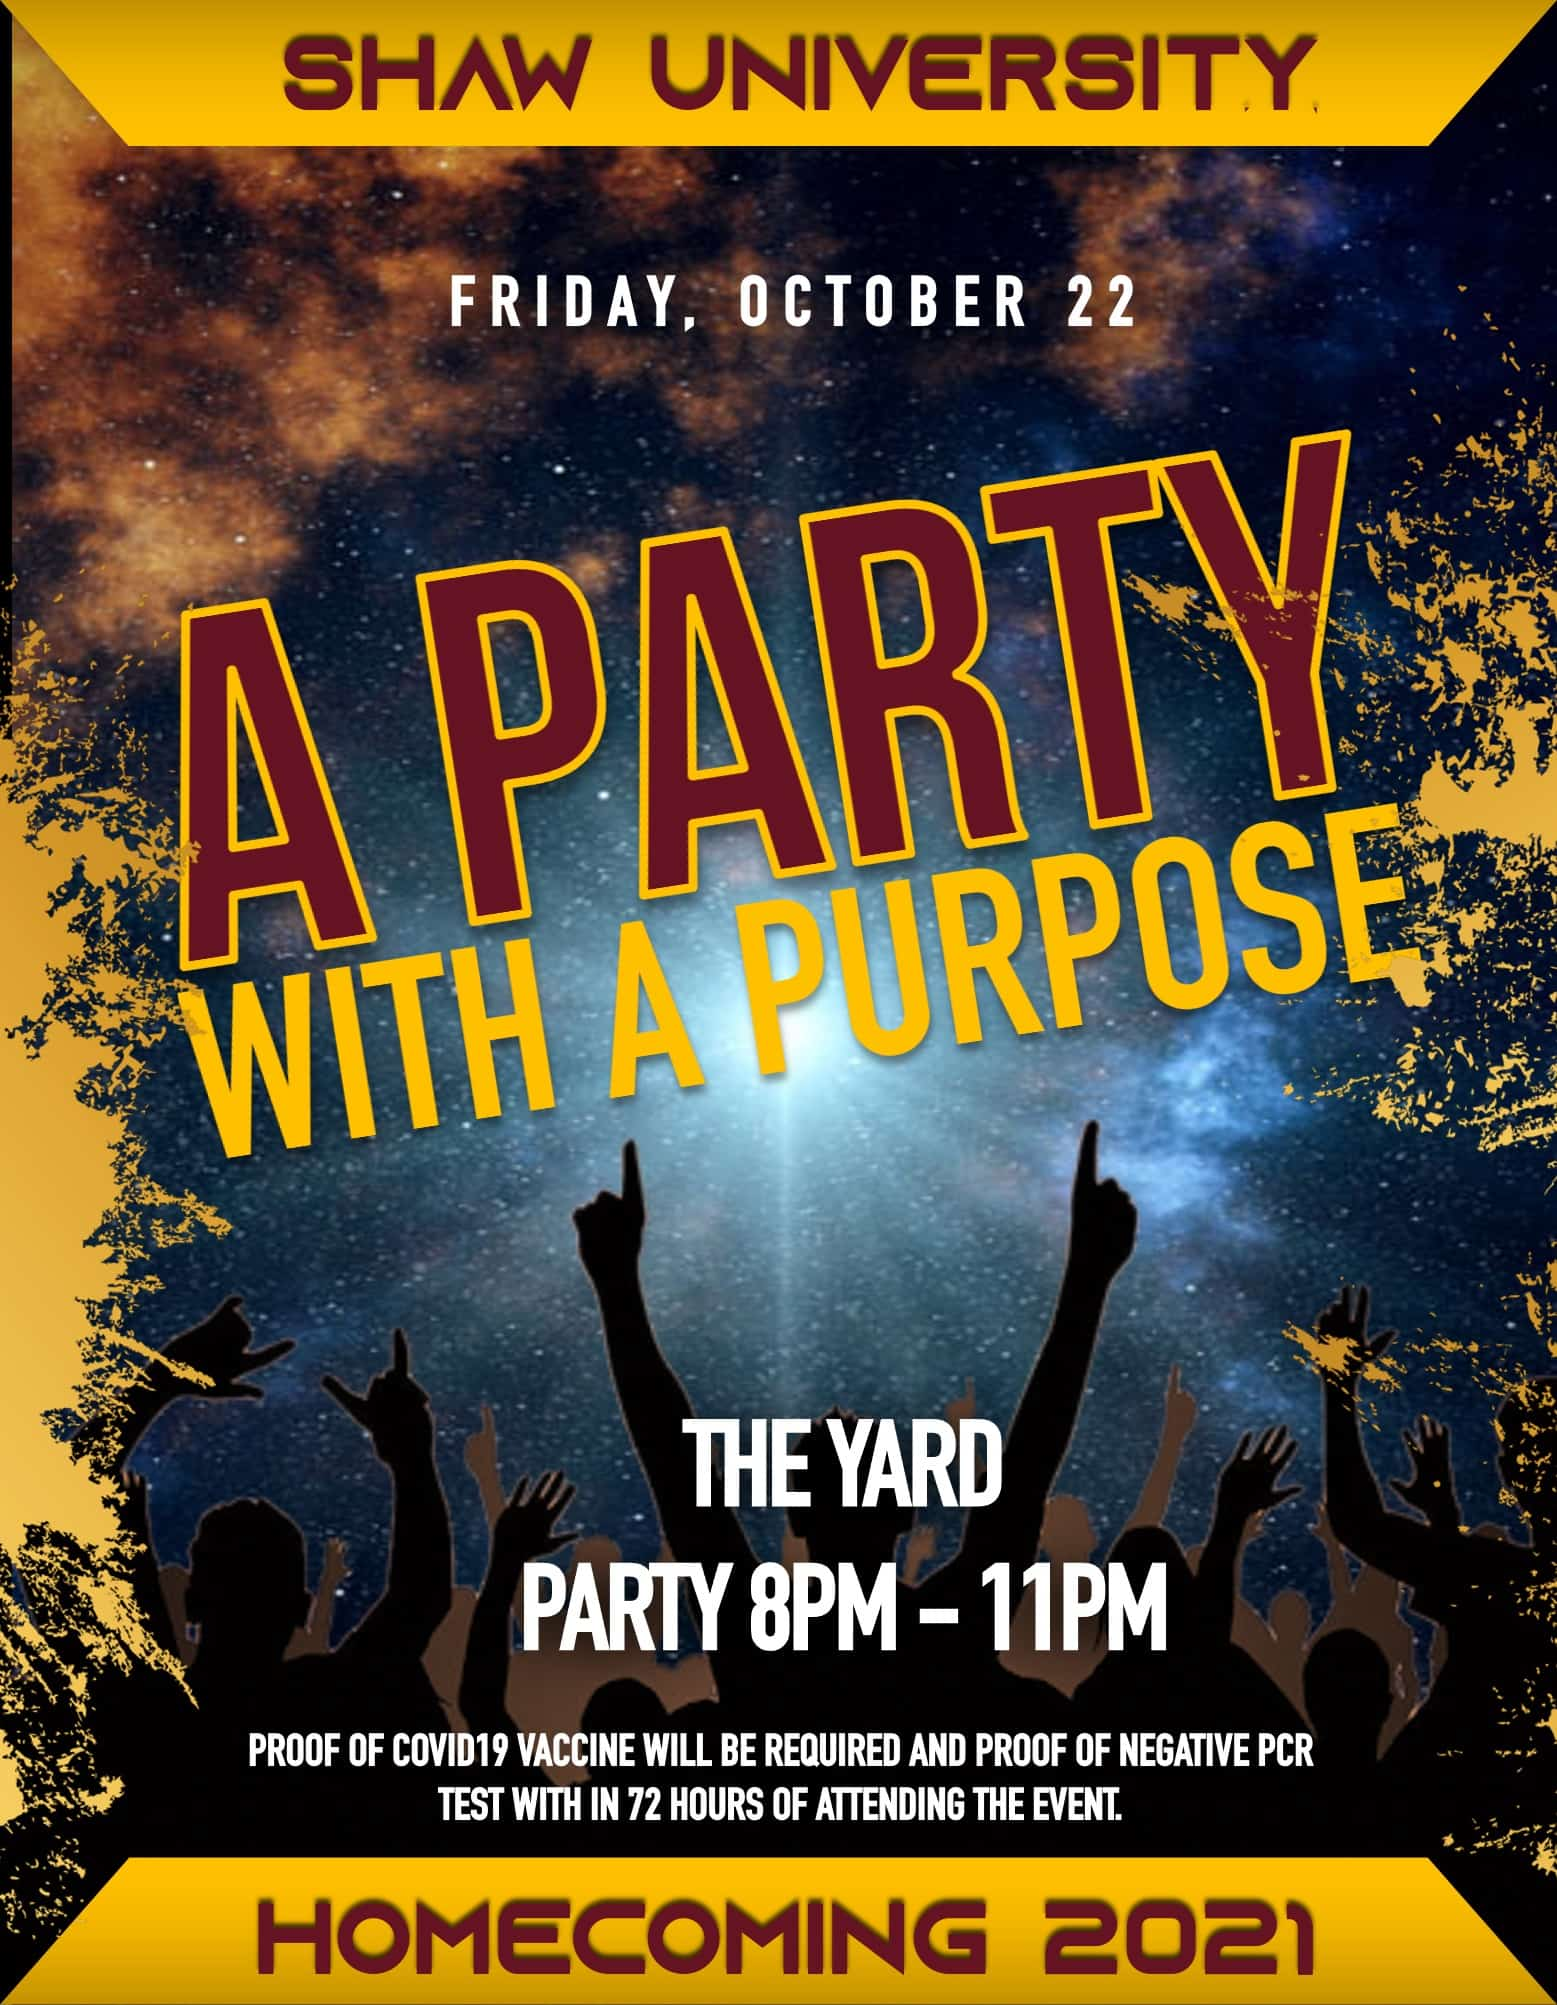 10.22.21 - party with a Purpose